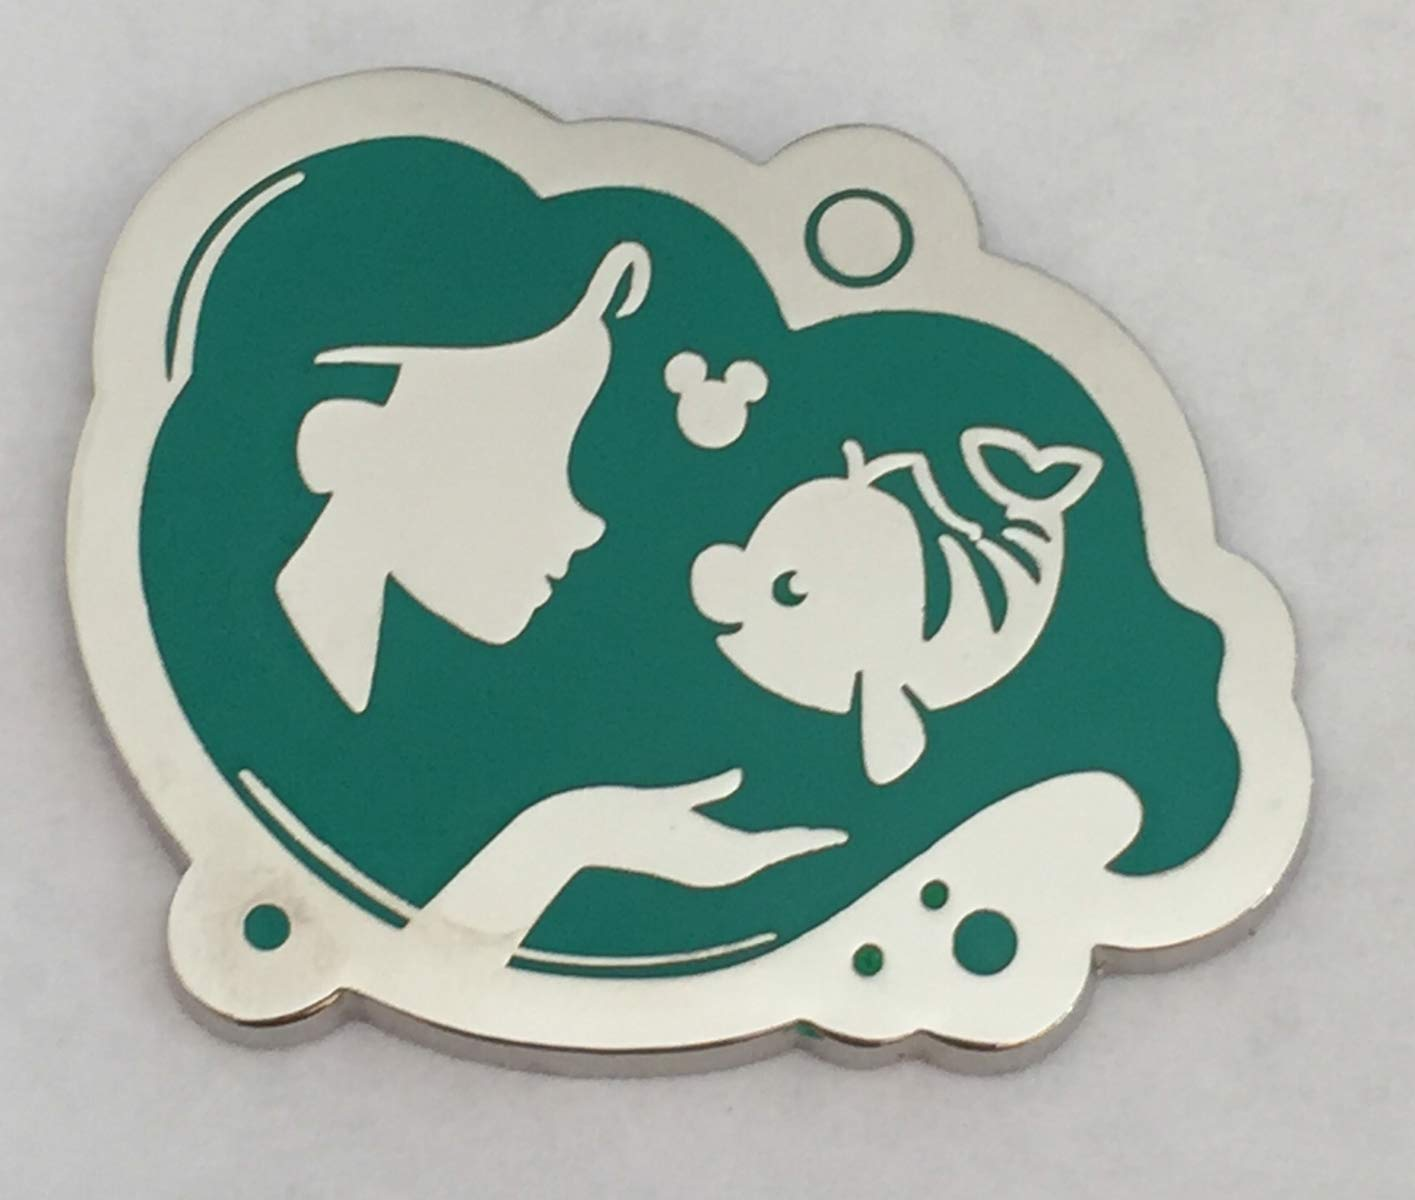 Disney Pin DLR 2018 Hidden Mickey Ariel Princess Little Mermaid Silhouettee Disney Pin